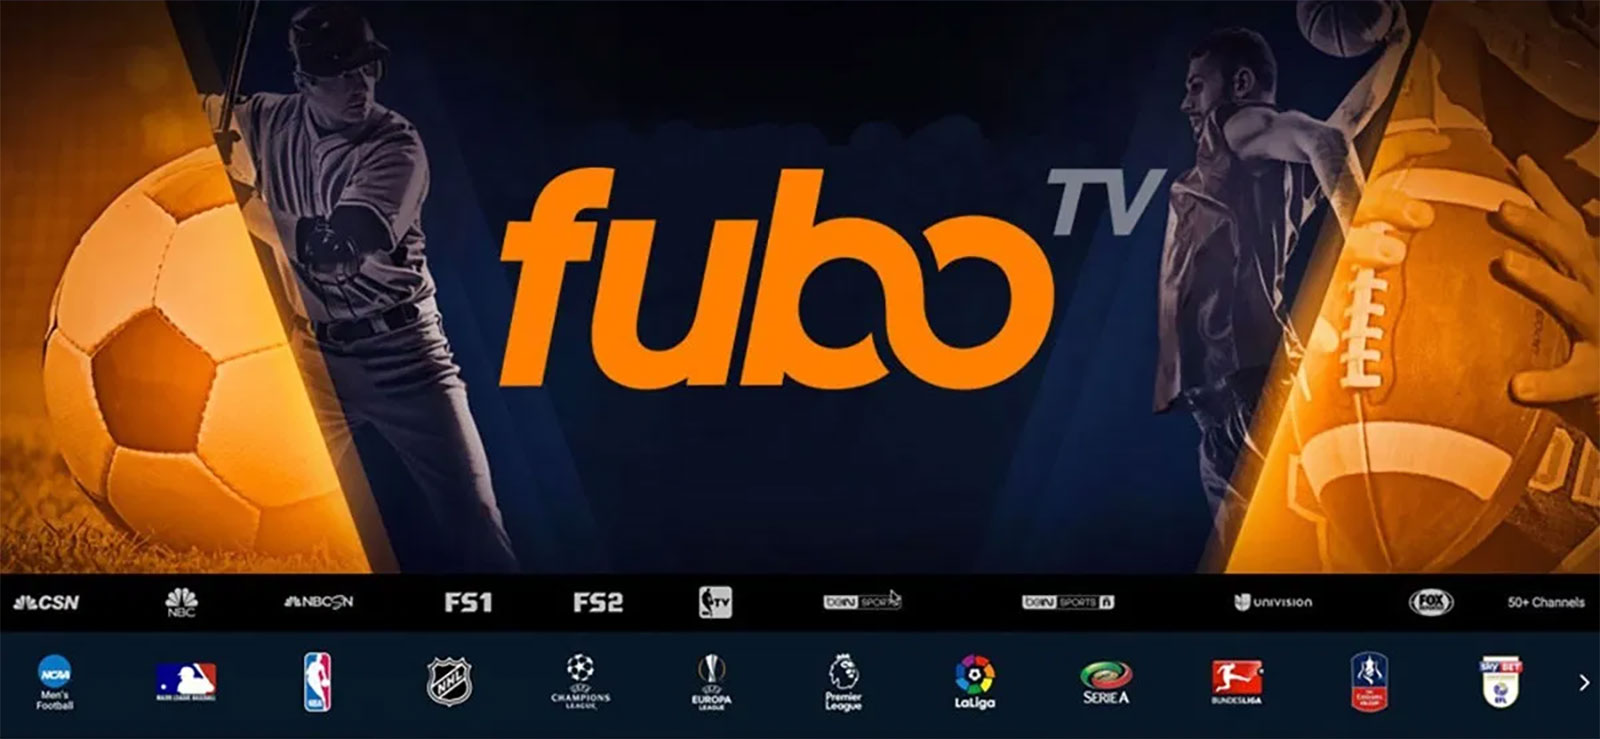 Download Fubotv Watch Live Sports Tv Shows Movies News Apk Mod Original For Android